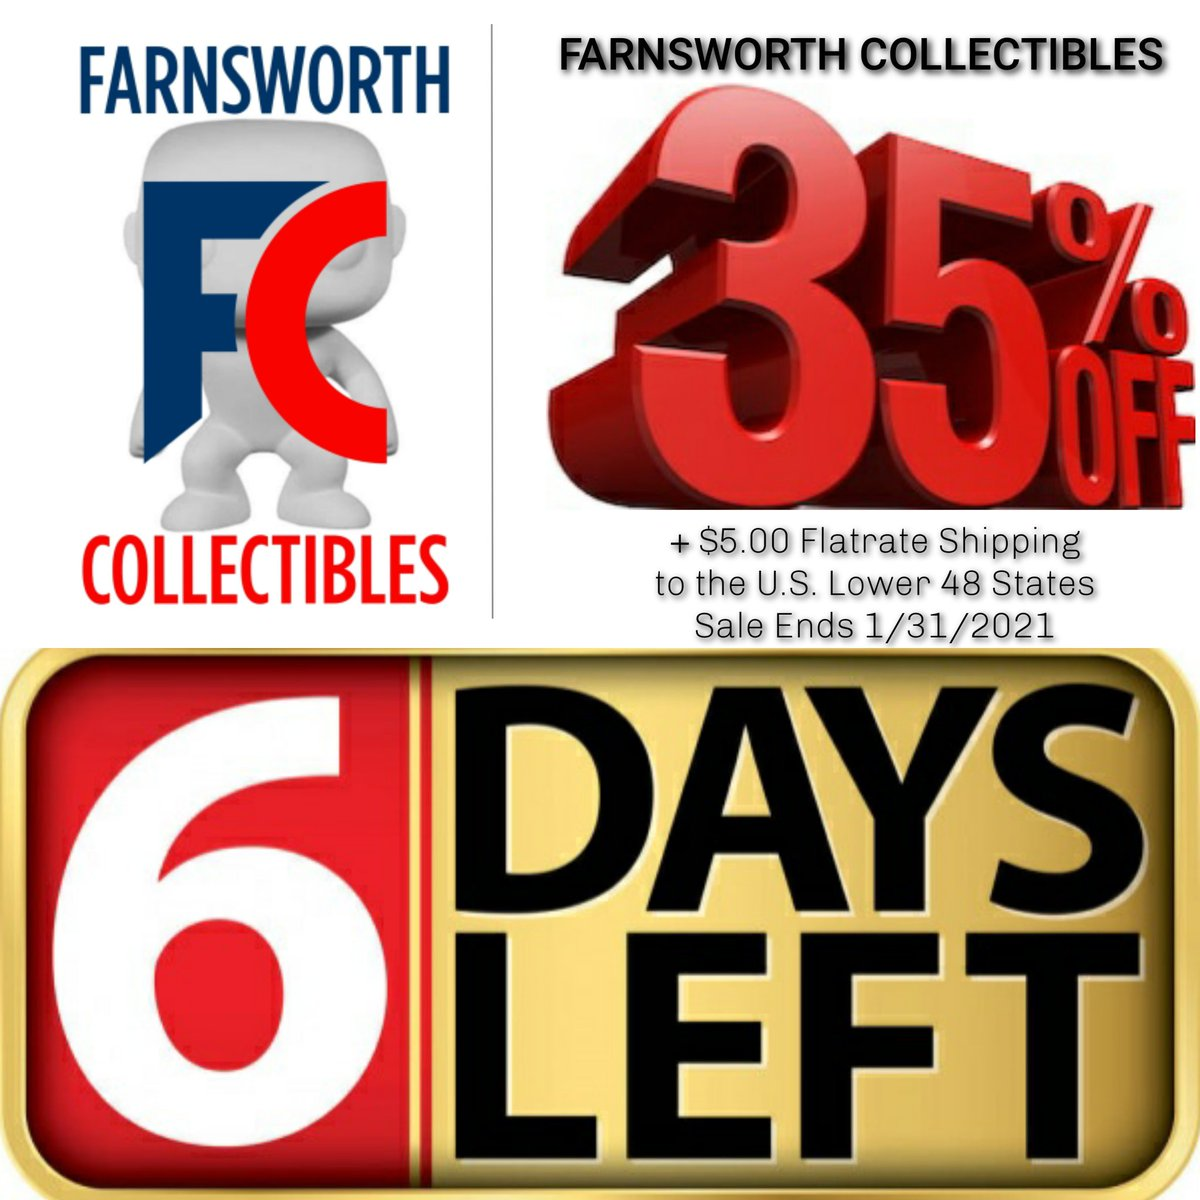 Only 6 Days Remaining! Funko Pops! 35% OFF + $5.00 Flatrate Shipping (Shipping rate only for Lower 48 USA)    #farnsworthcollectibles #sale #sales #promo #promotion #ad #advertising #percent #discount #discounts #funkopopsale #marvel #dcuniverse #anime